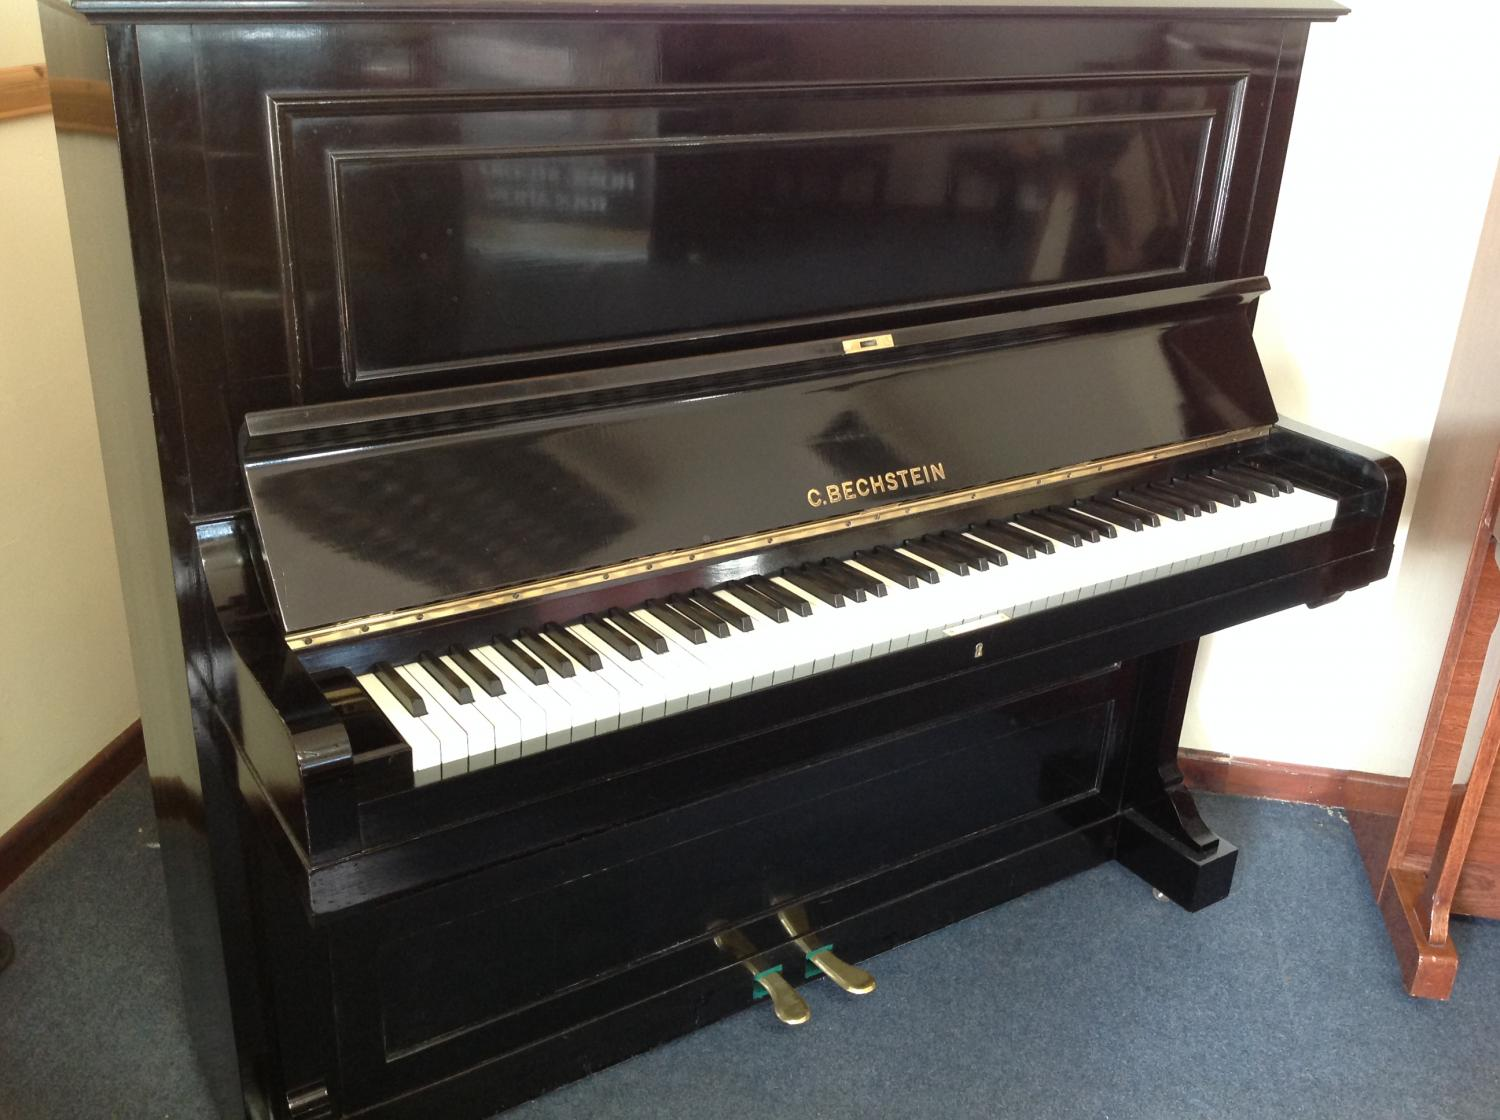 Bechstein model 10 upright piano for sale in restored for Piano upright dimensions